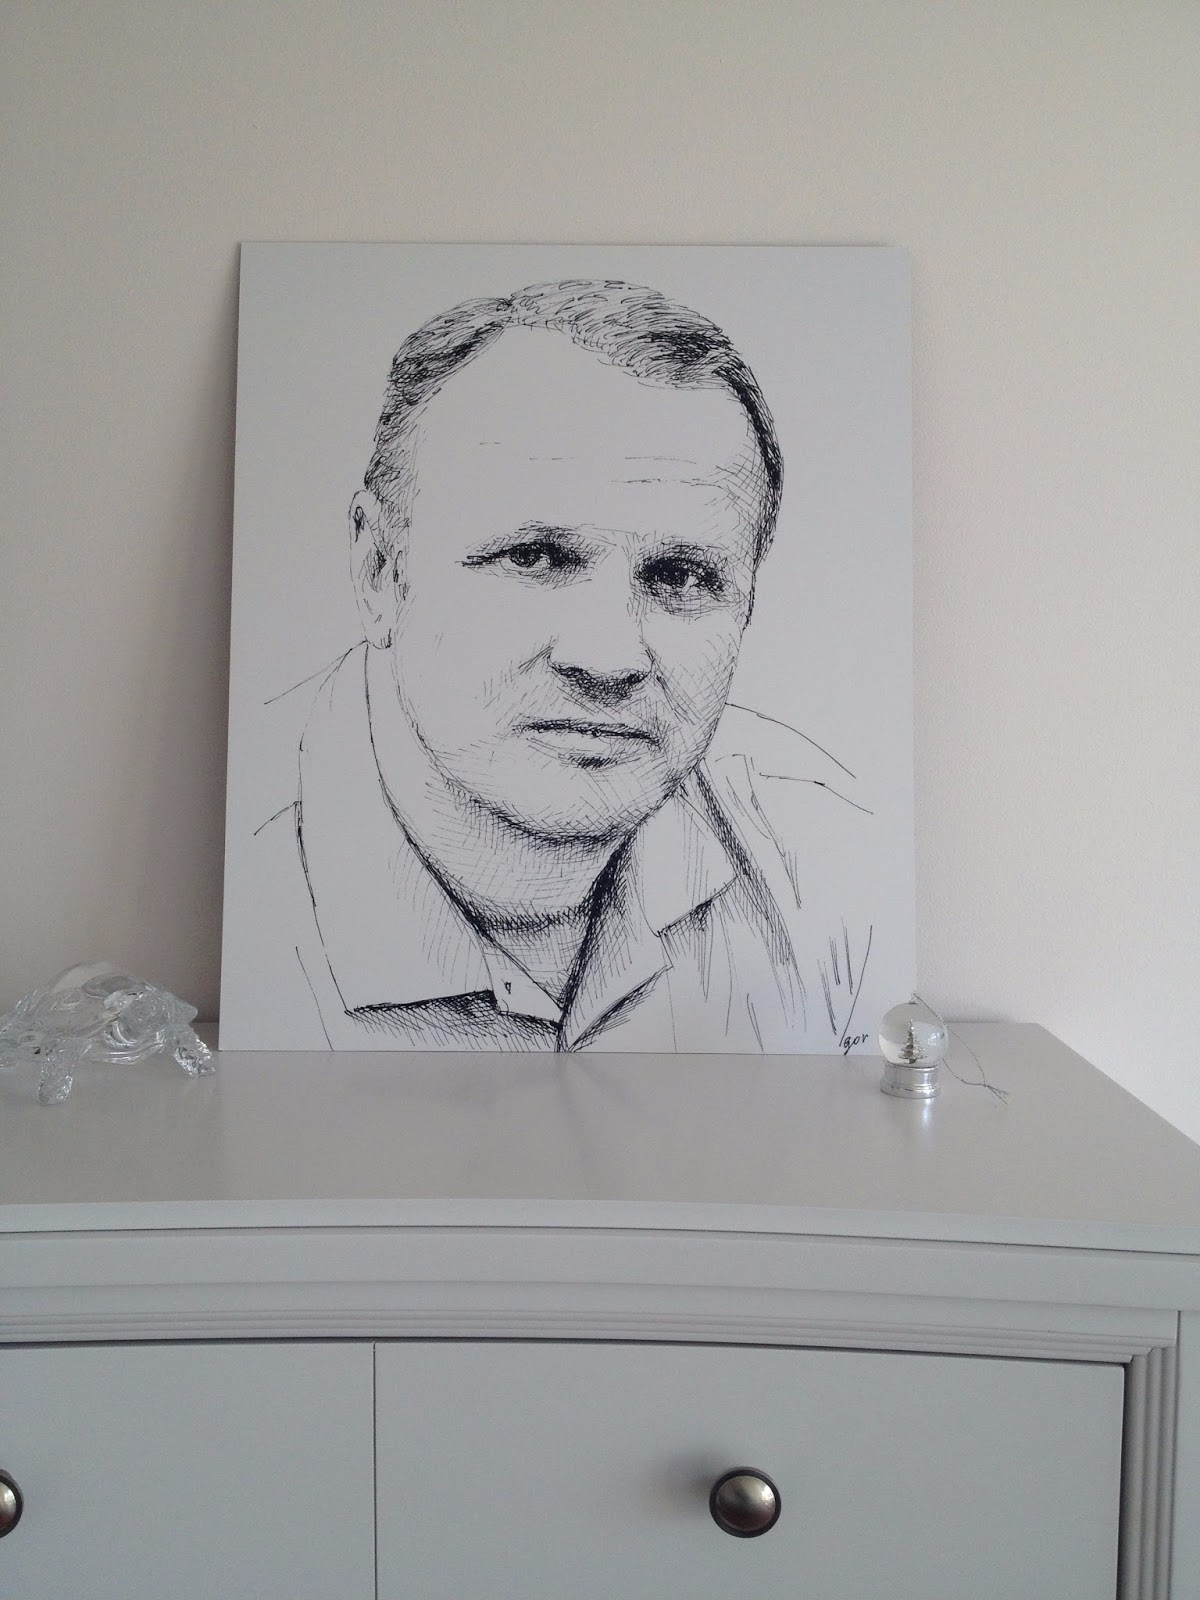 Custom portrait, how it looks on the wall. Classic ink drawing